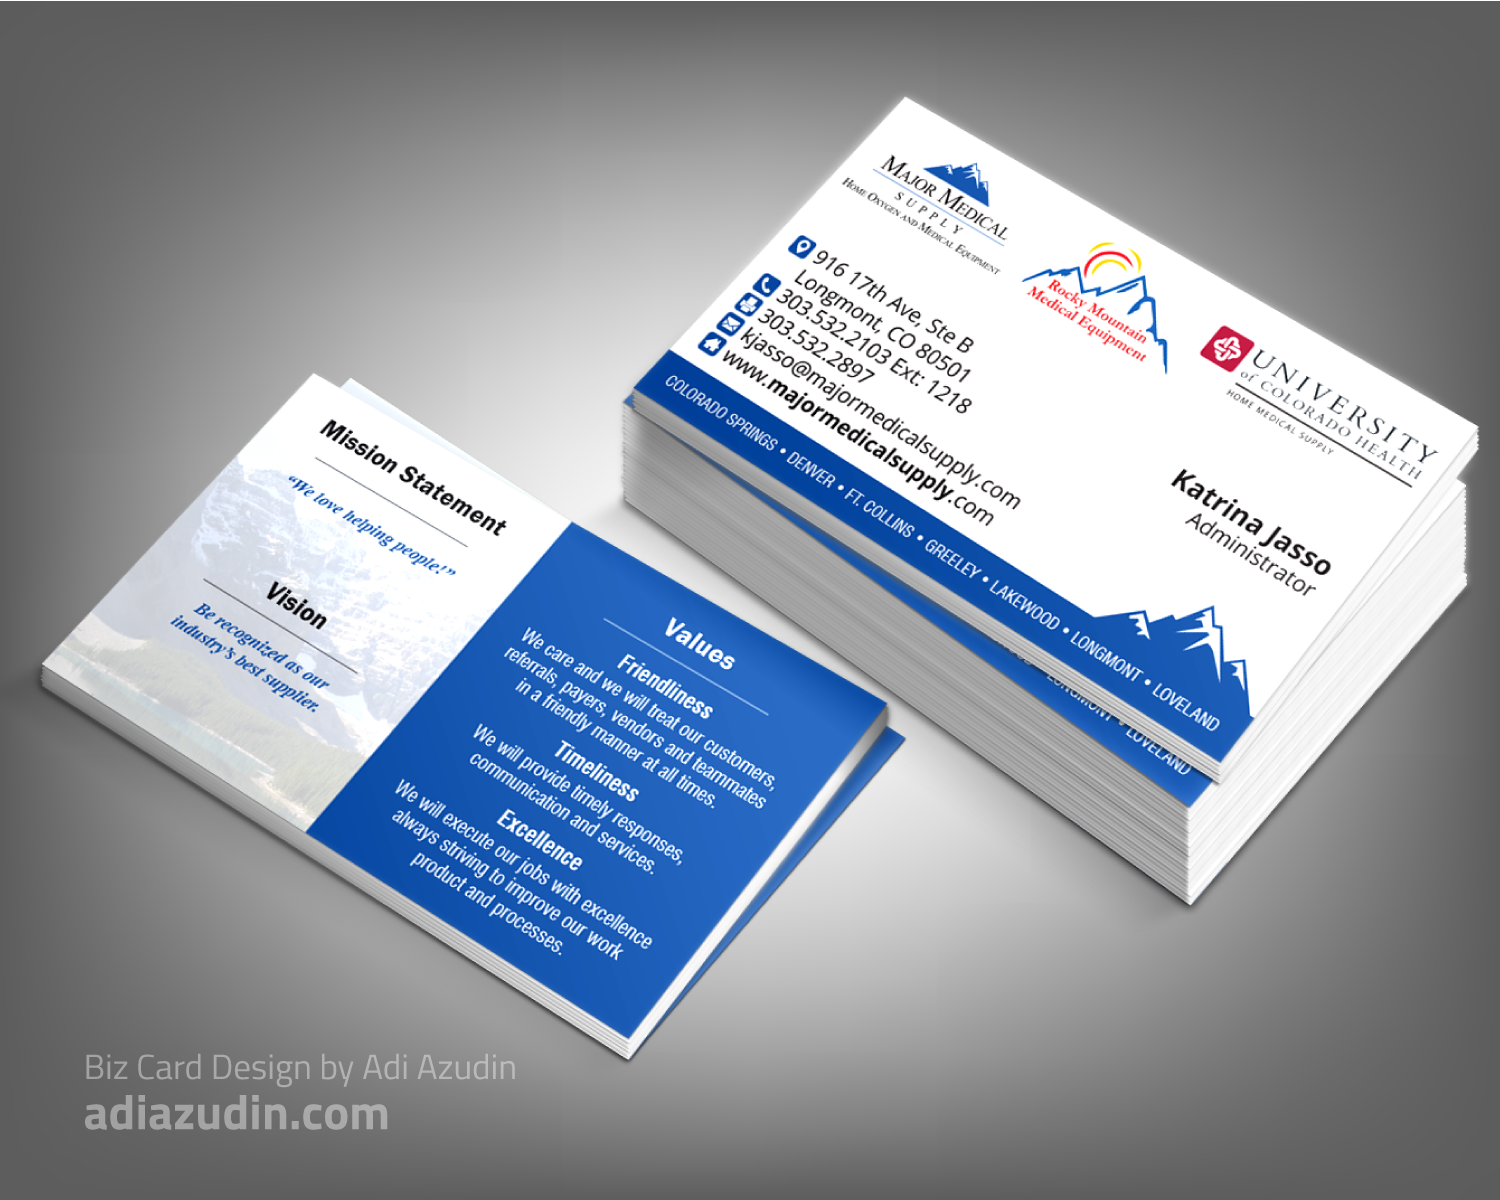 95 Serious Business Card Designs | Medical Equipment Business Card ...